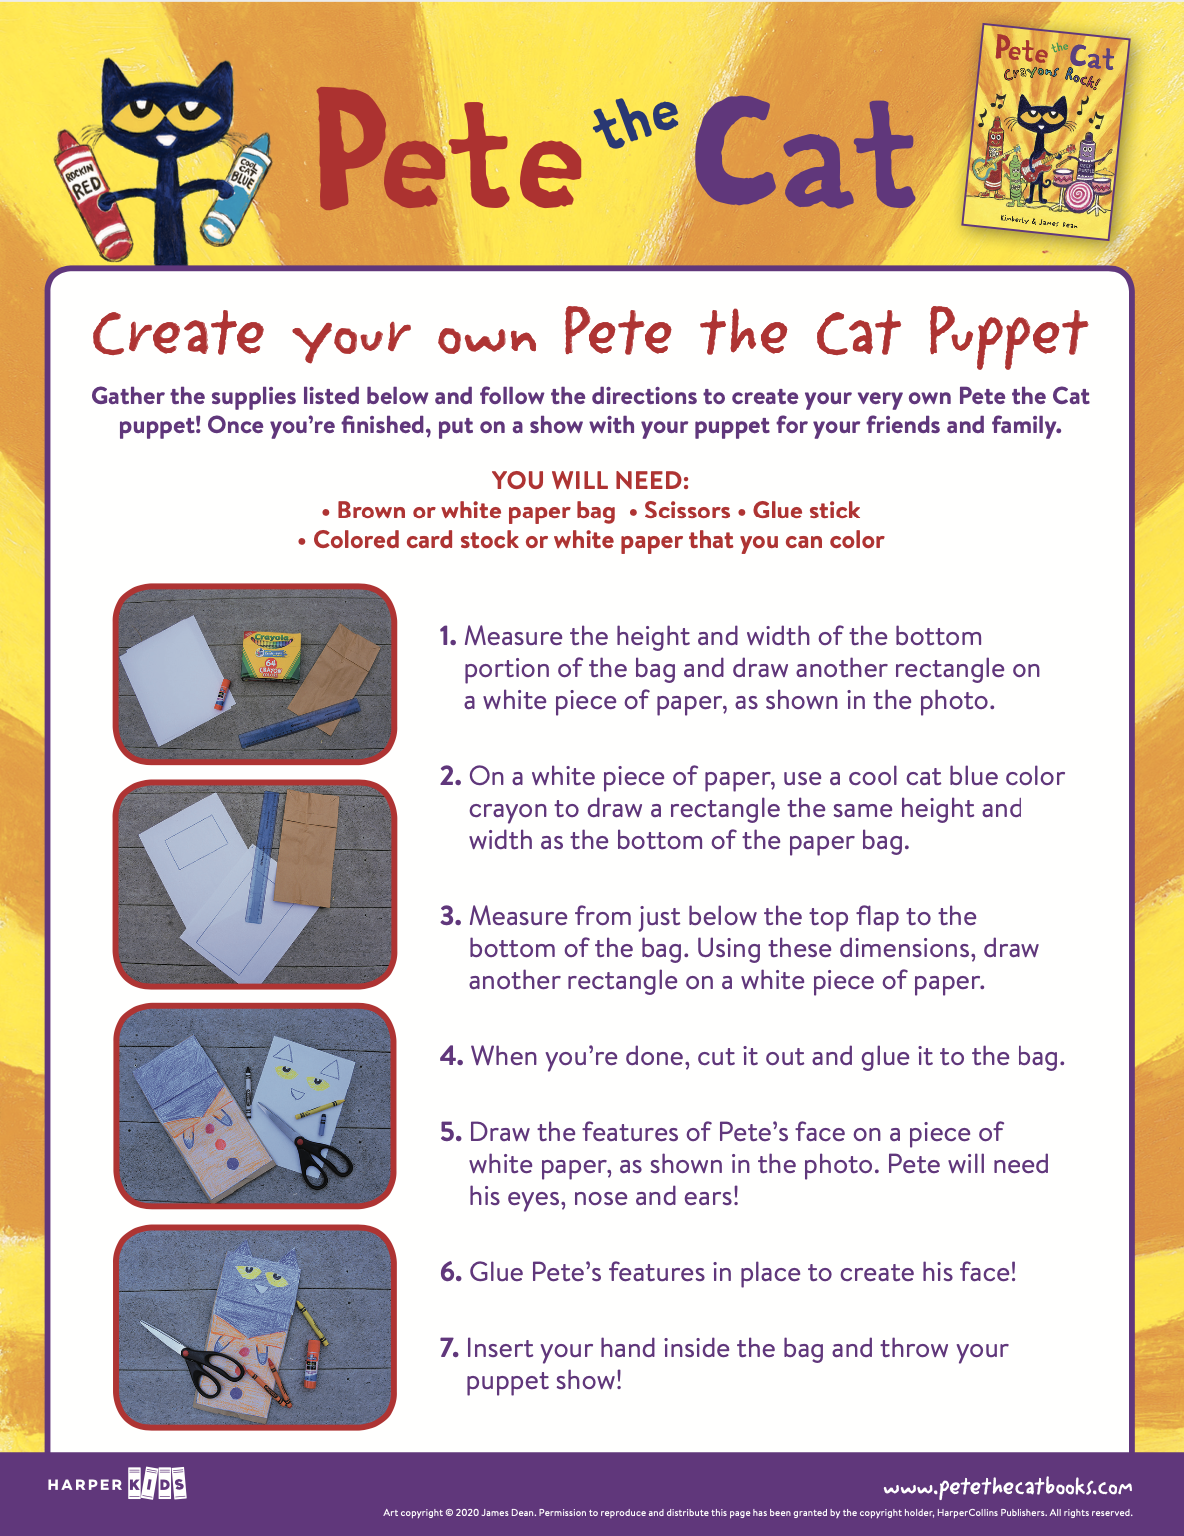 Create your own Pete the Cat Puppet